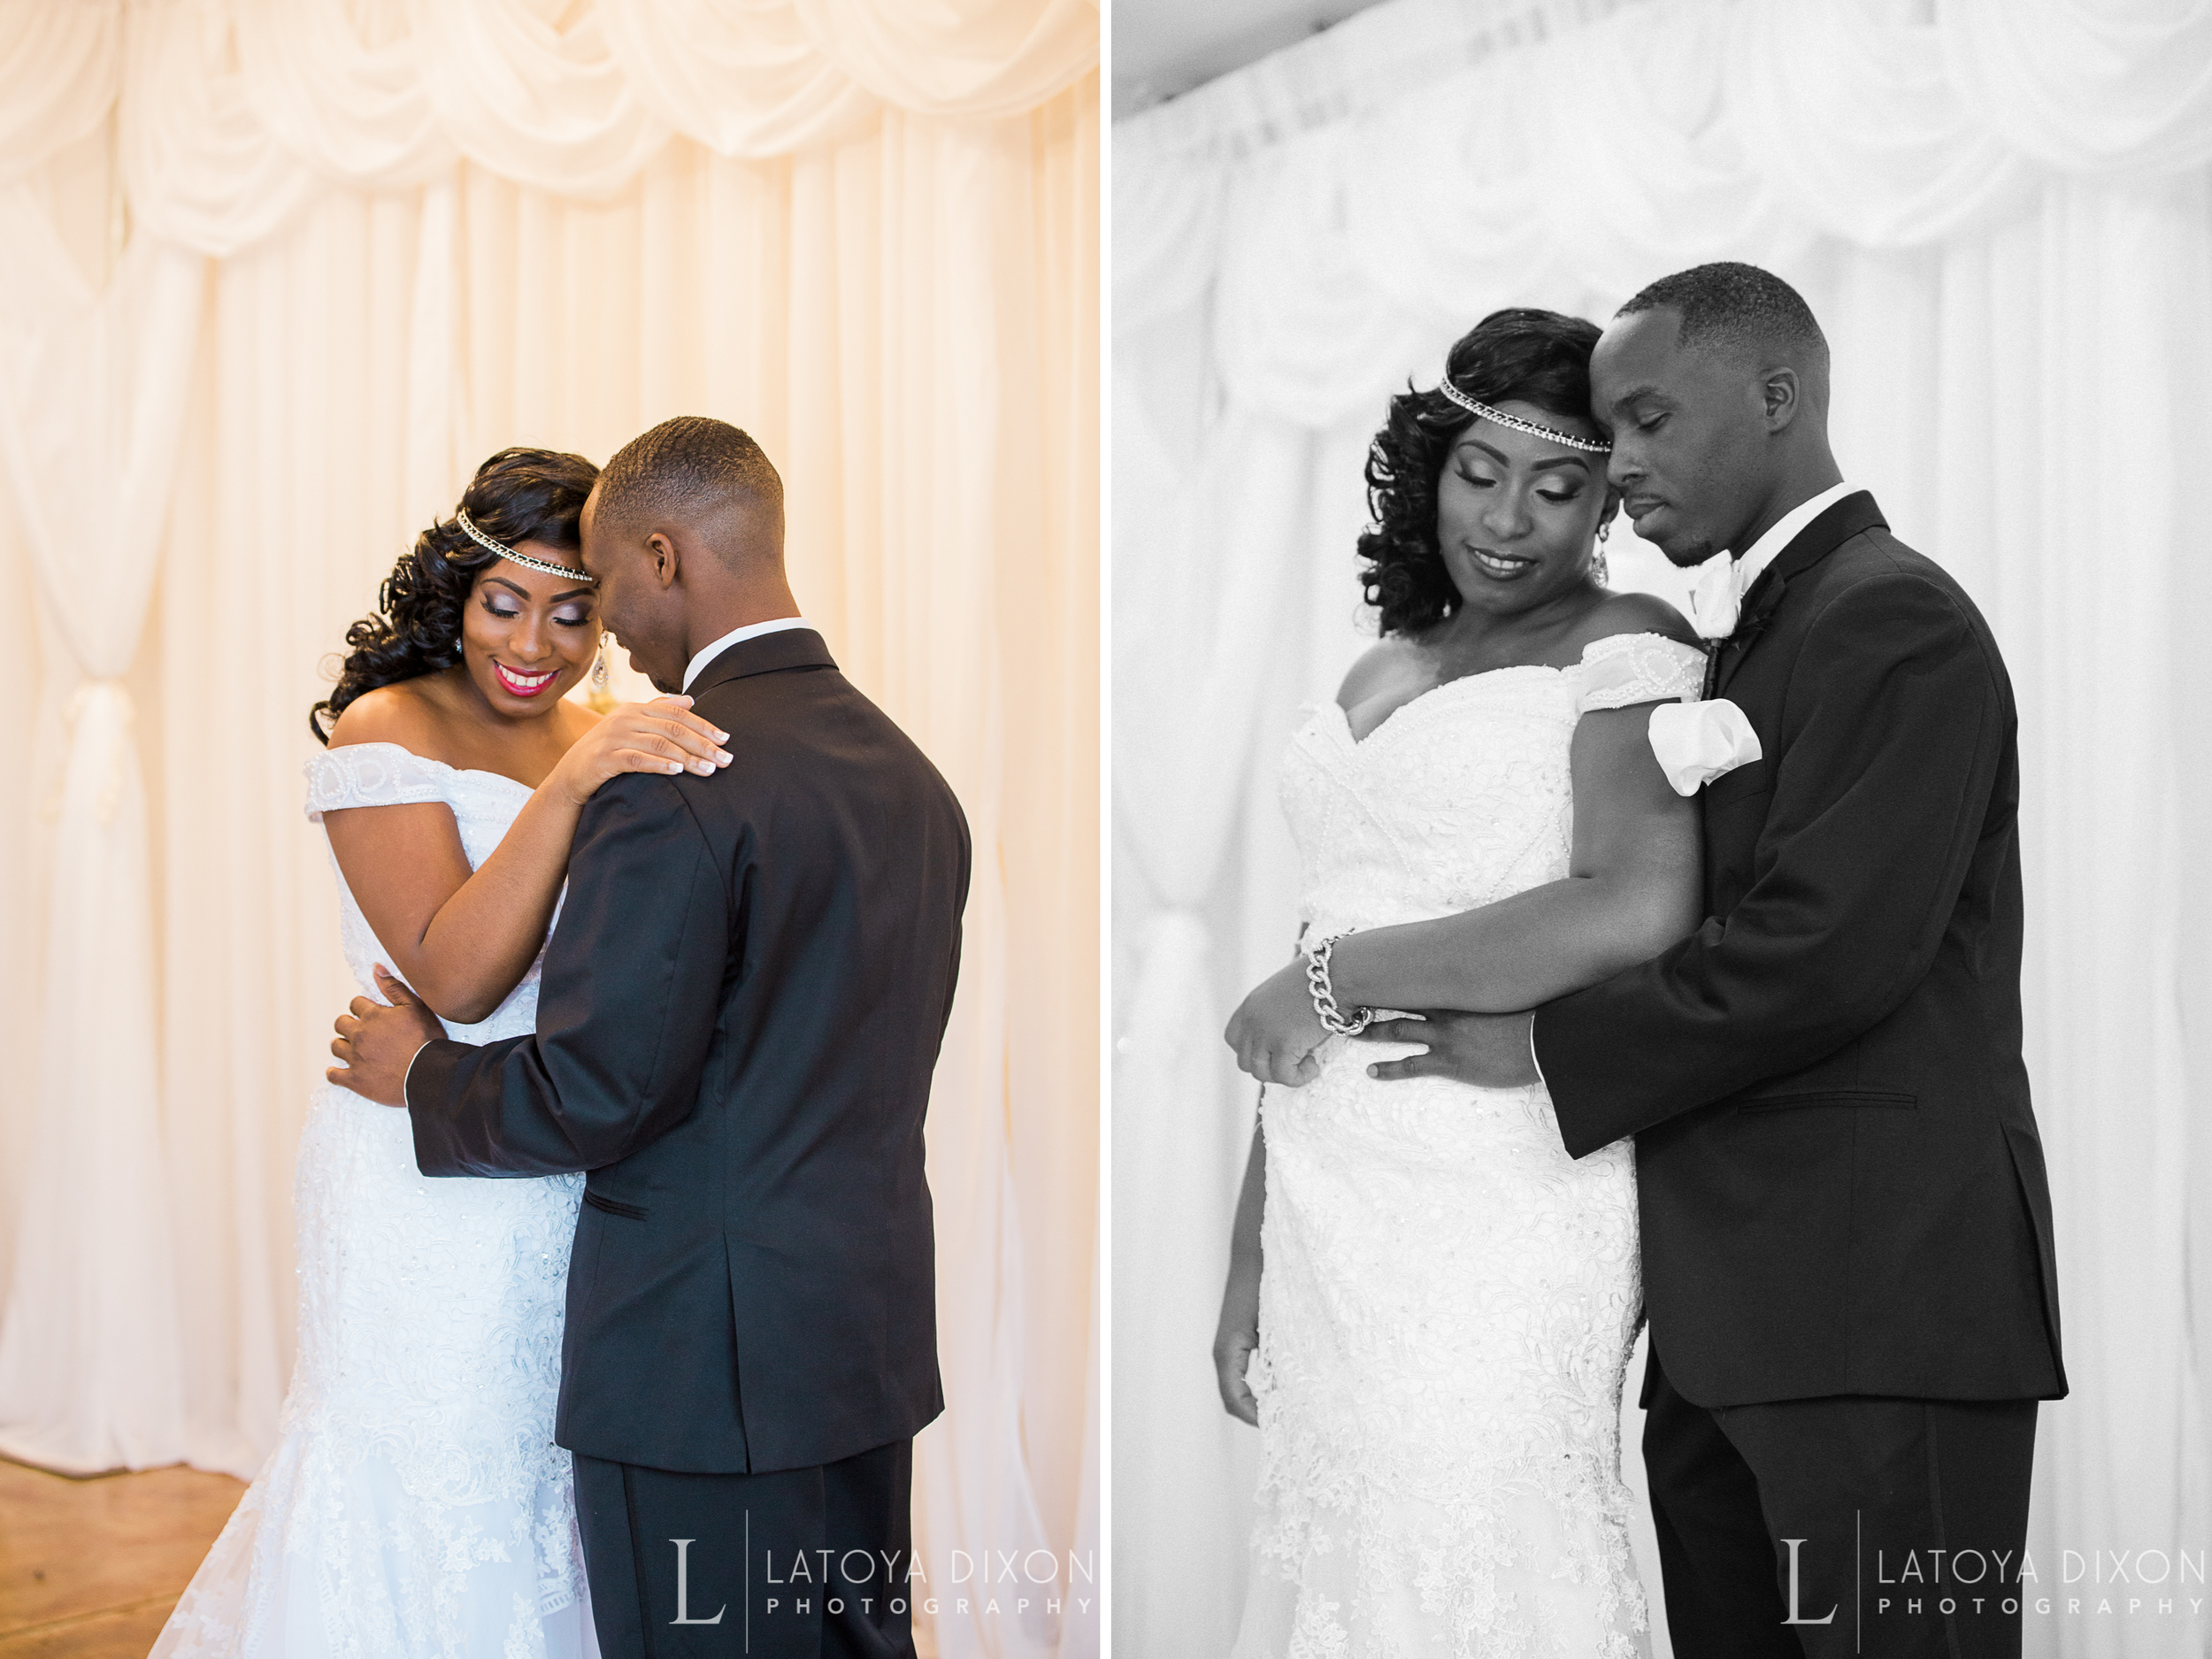 Latoya Dixon Photography Greenville SC Wedding Photographer